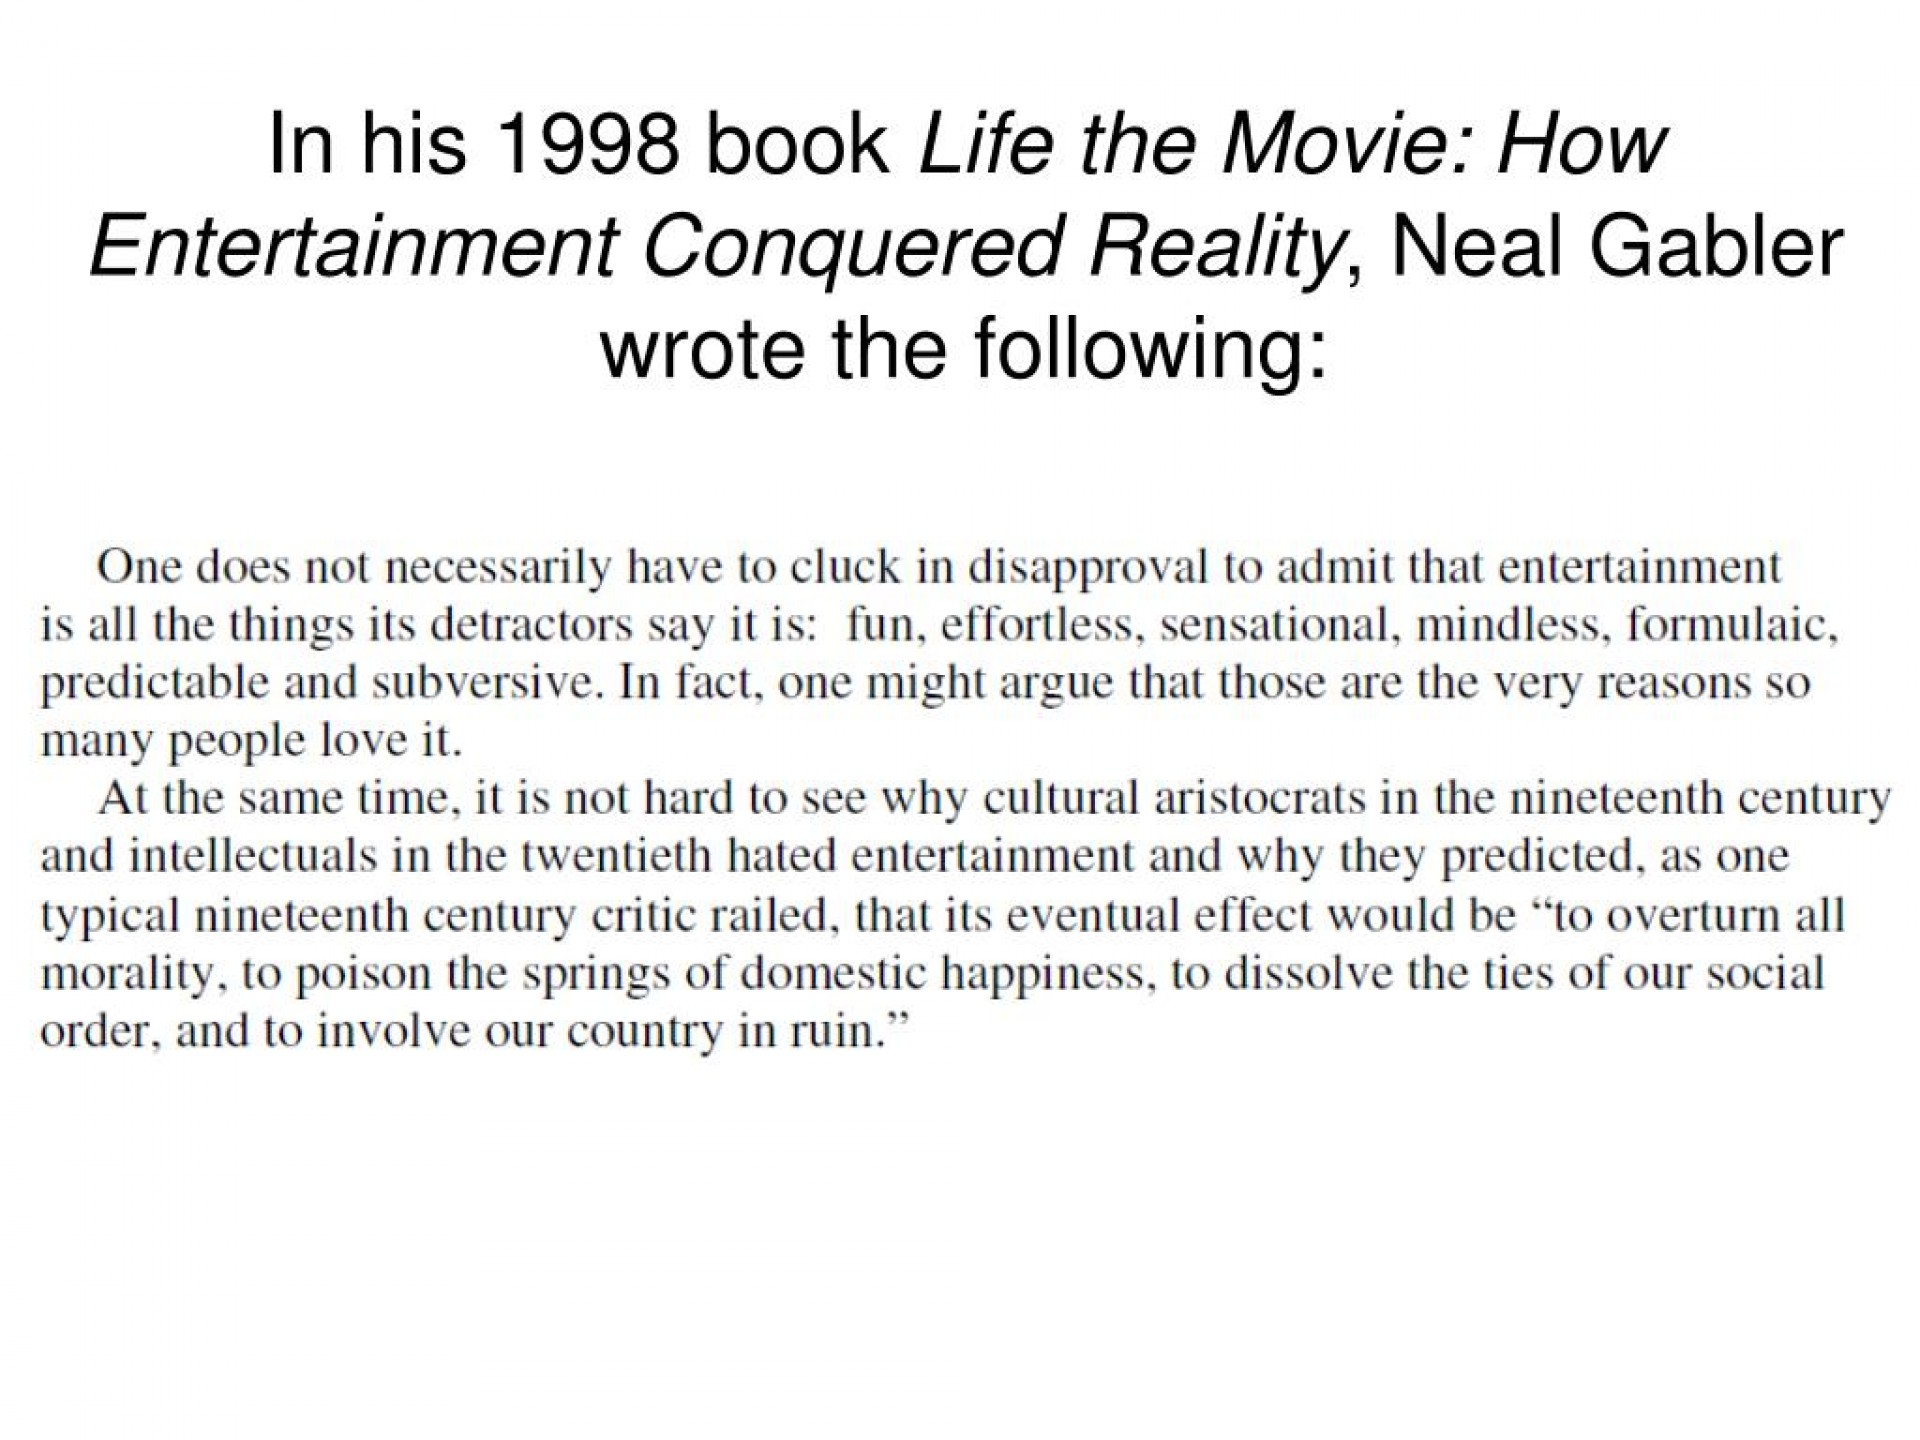 015 Argumentative Essay Powerpoint Example In His Bookife The Movie How Entertainment Conquered Reality Neal Gabler Wrote Following Frightening Presentation Slides For Middle School 1920